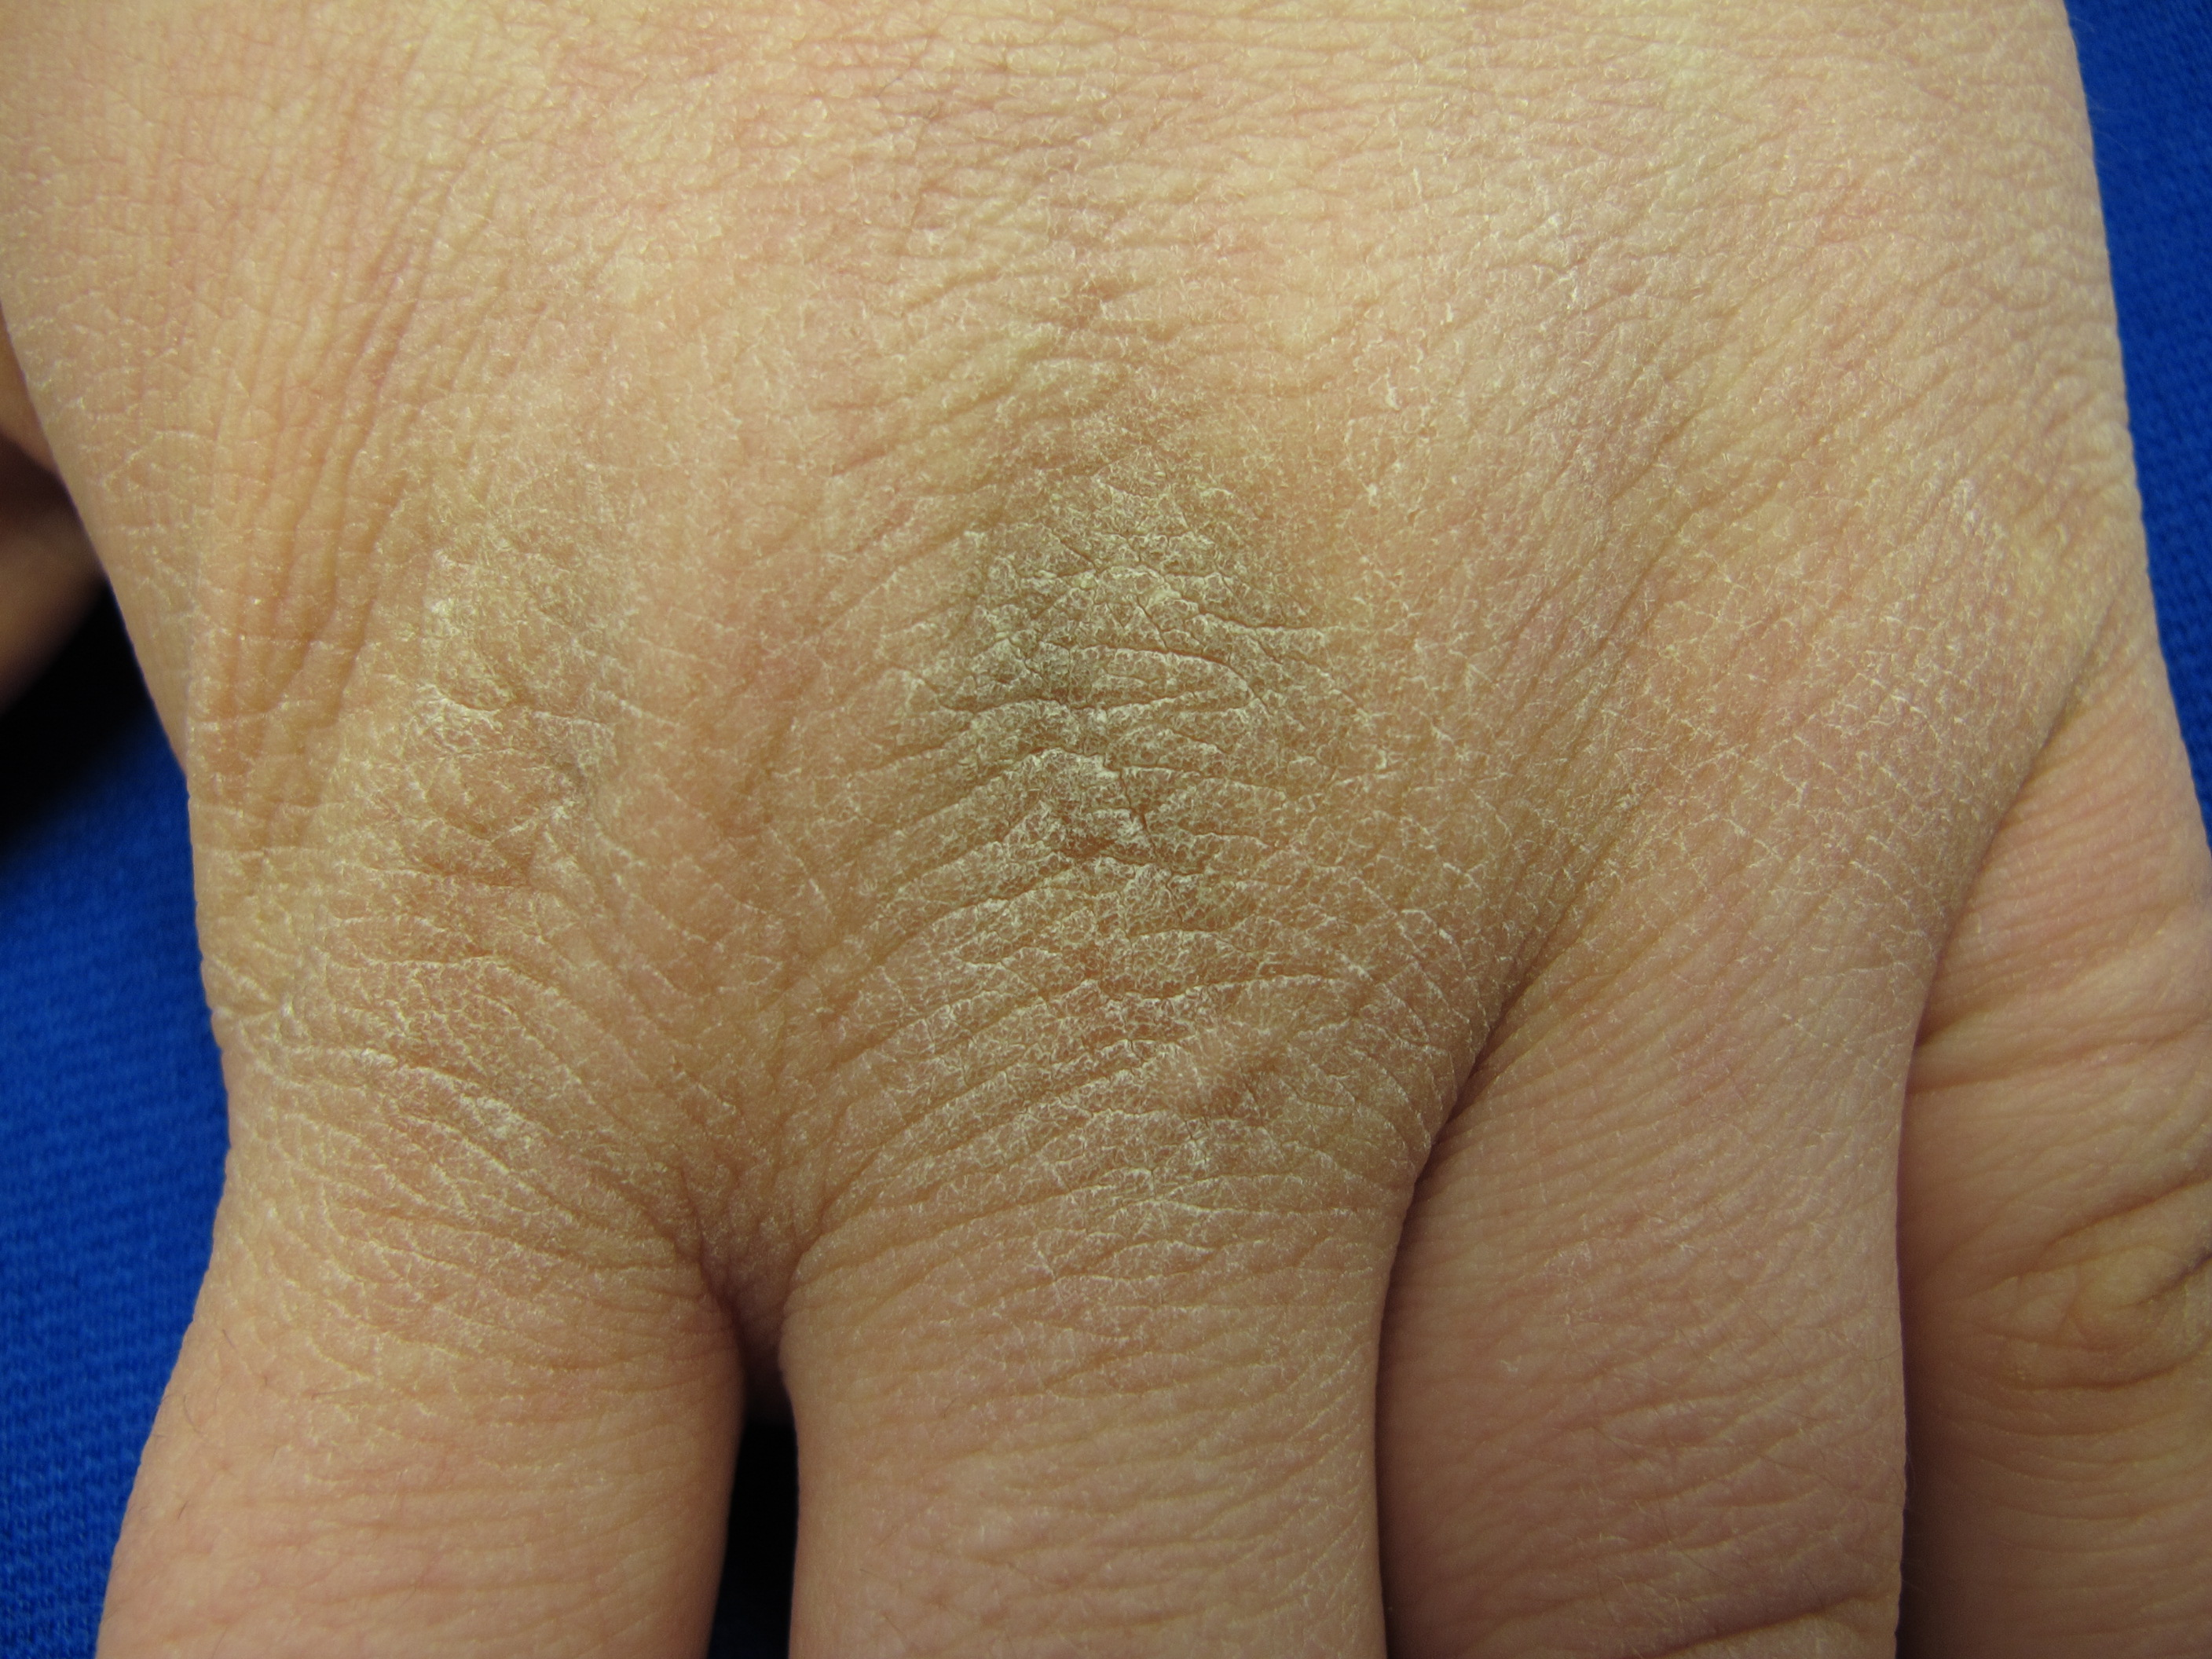 Acanthosis nigricans - The Clinical Advisor